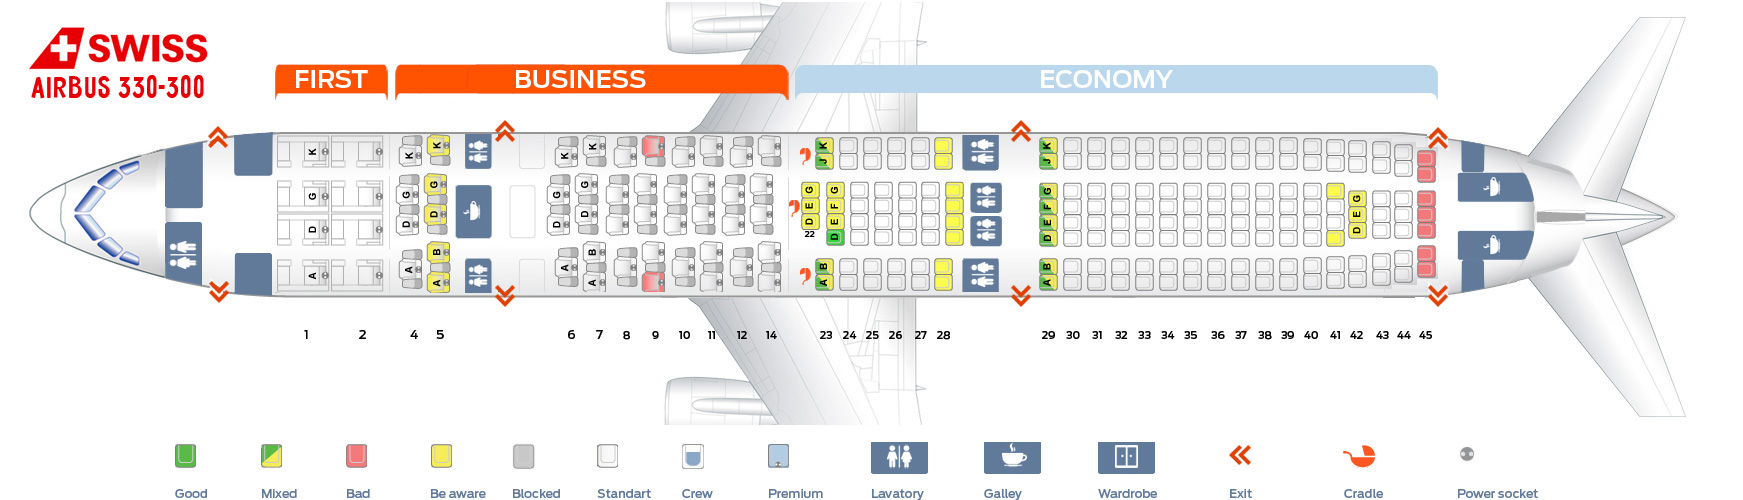 Seat map Airbus A330-300 Swiss Airlines